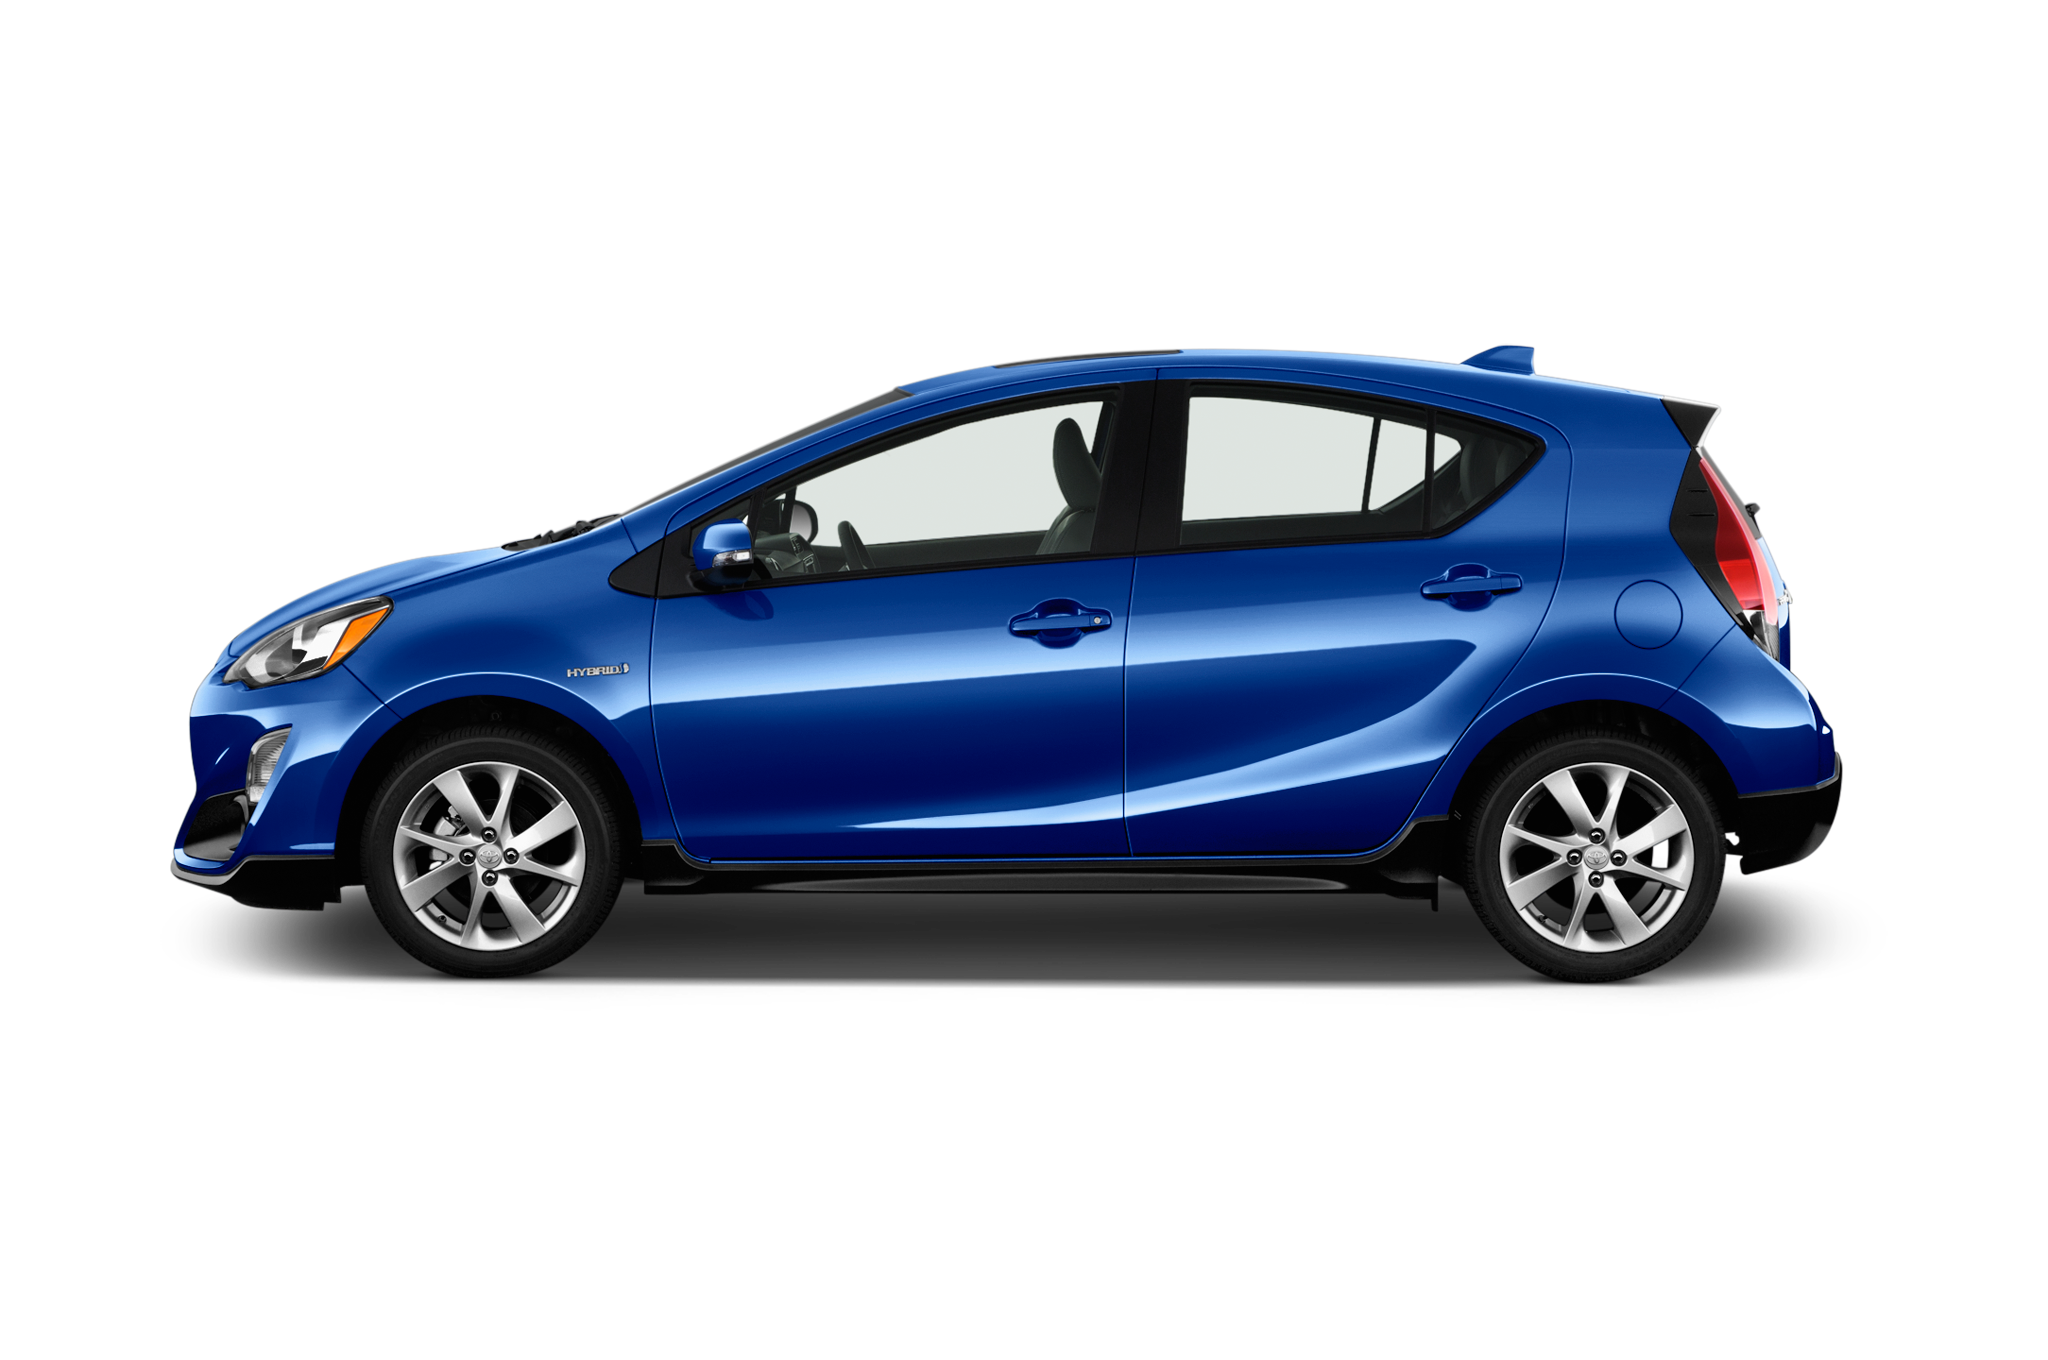 2017 toyota prius c gets refreshed automobile magazine. Black Bedroom Furniture Sets. Home Design Ideas